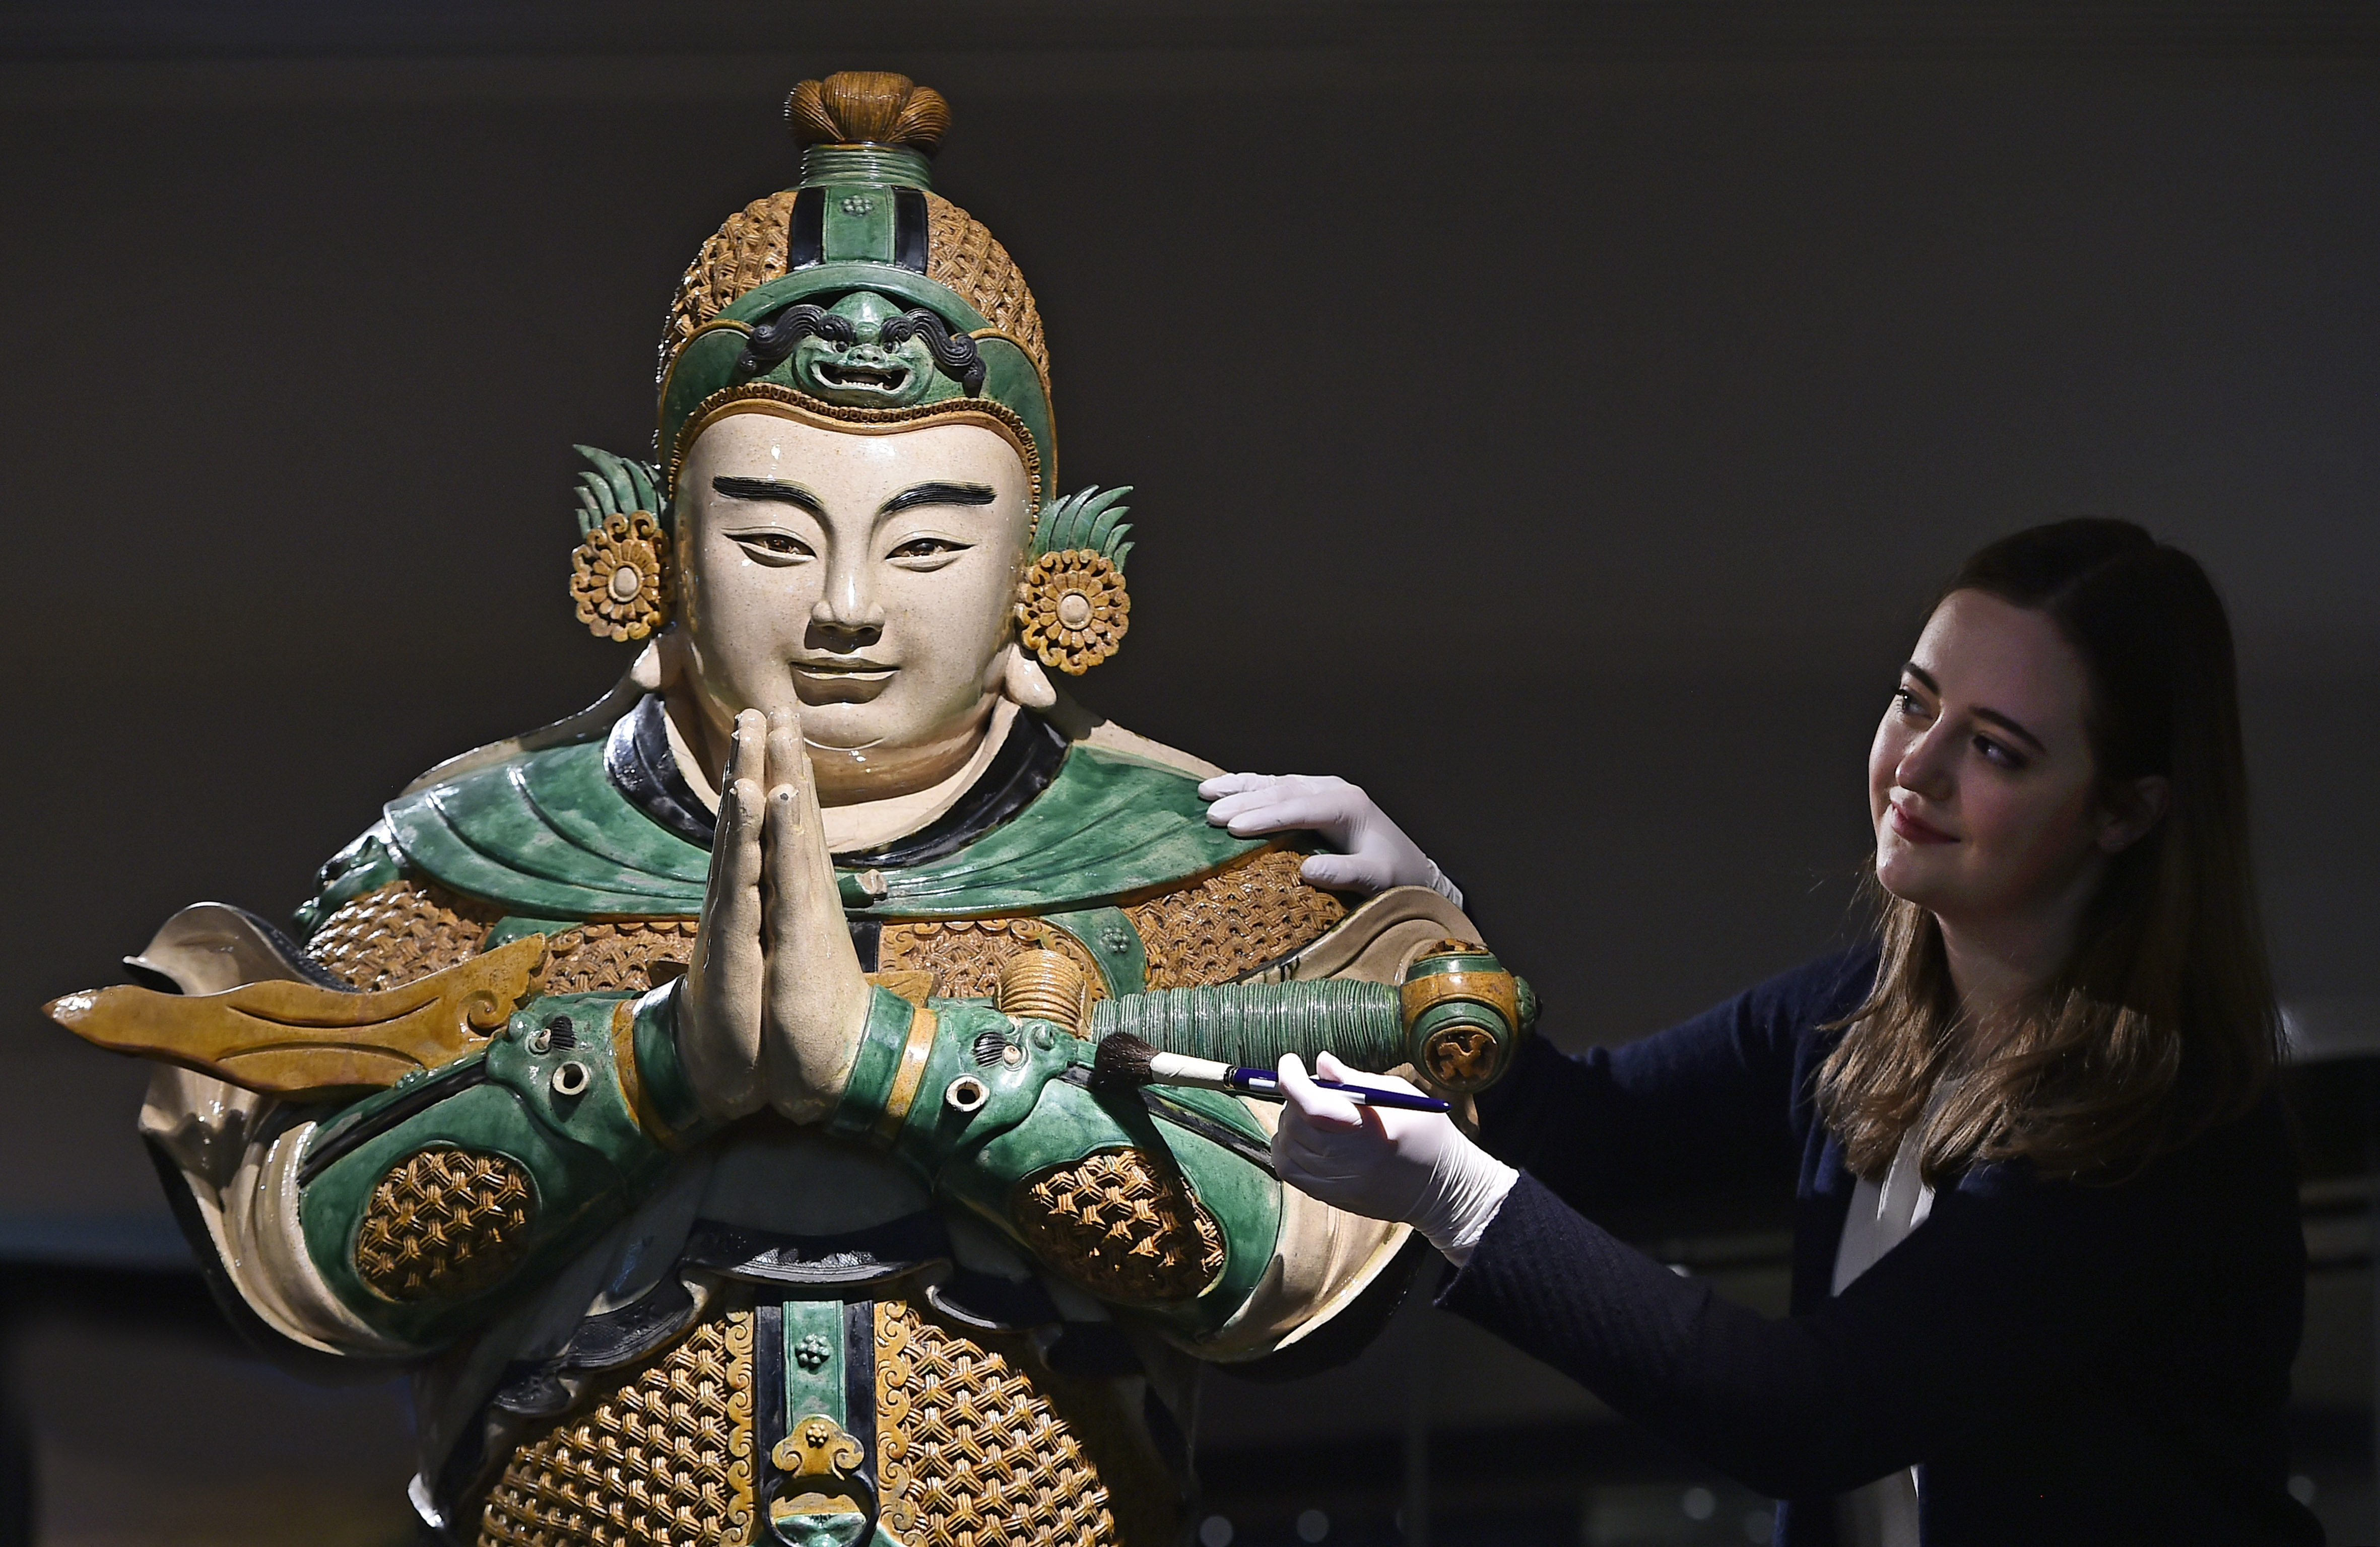 New exhibitions on the cultures of Egypt, China, Japan and Korea will mark the completion of the National Museum of Scotland's 15-year transformation.